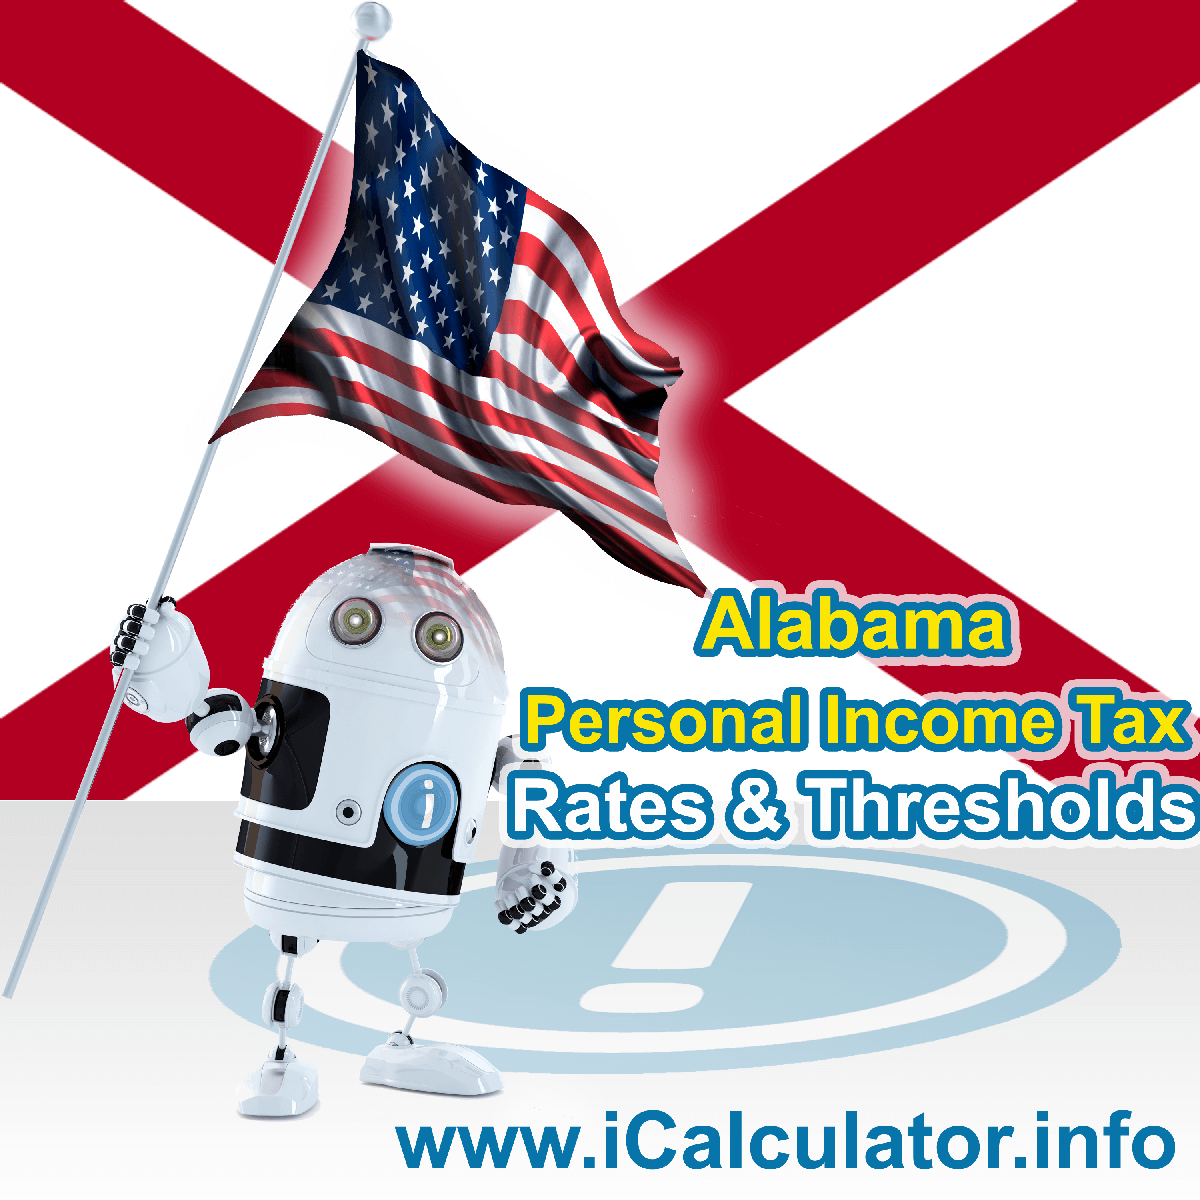 Alabama State Tax Tables 2016. This image displays details of the Alabama State Tax Tables for the 2016 tax return year which is provided in support of the 2016 US Tax Calculator